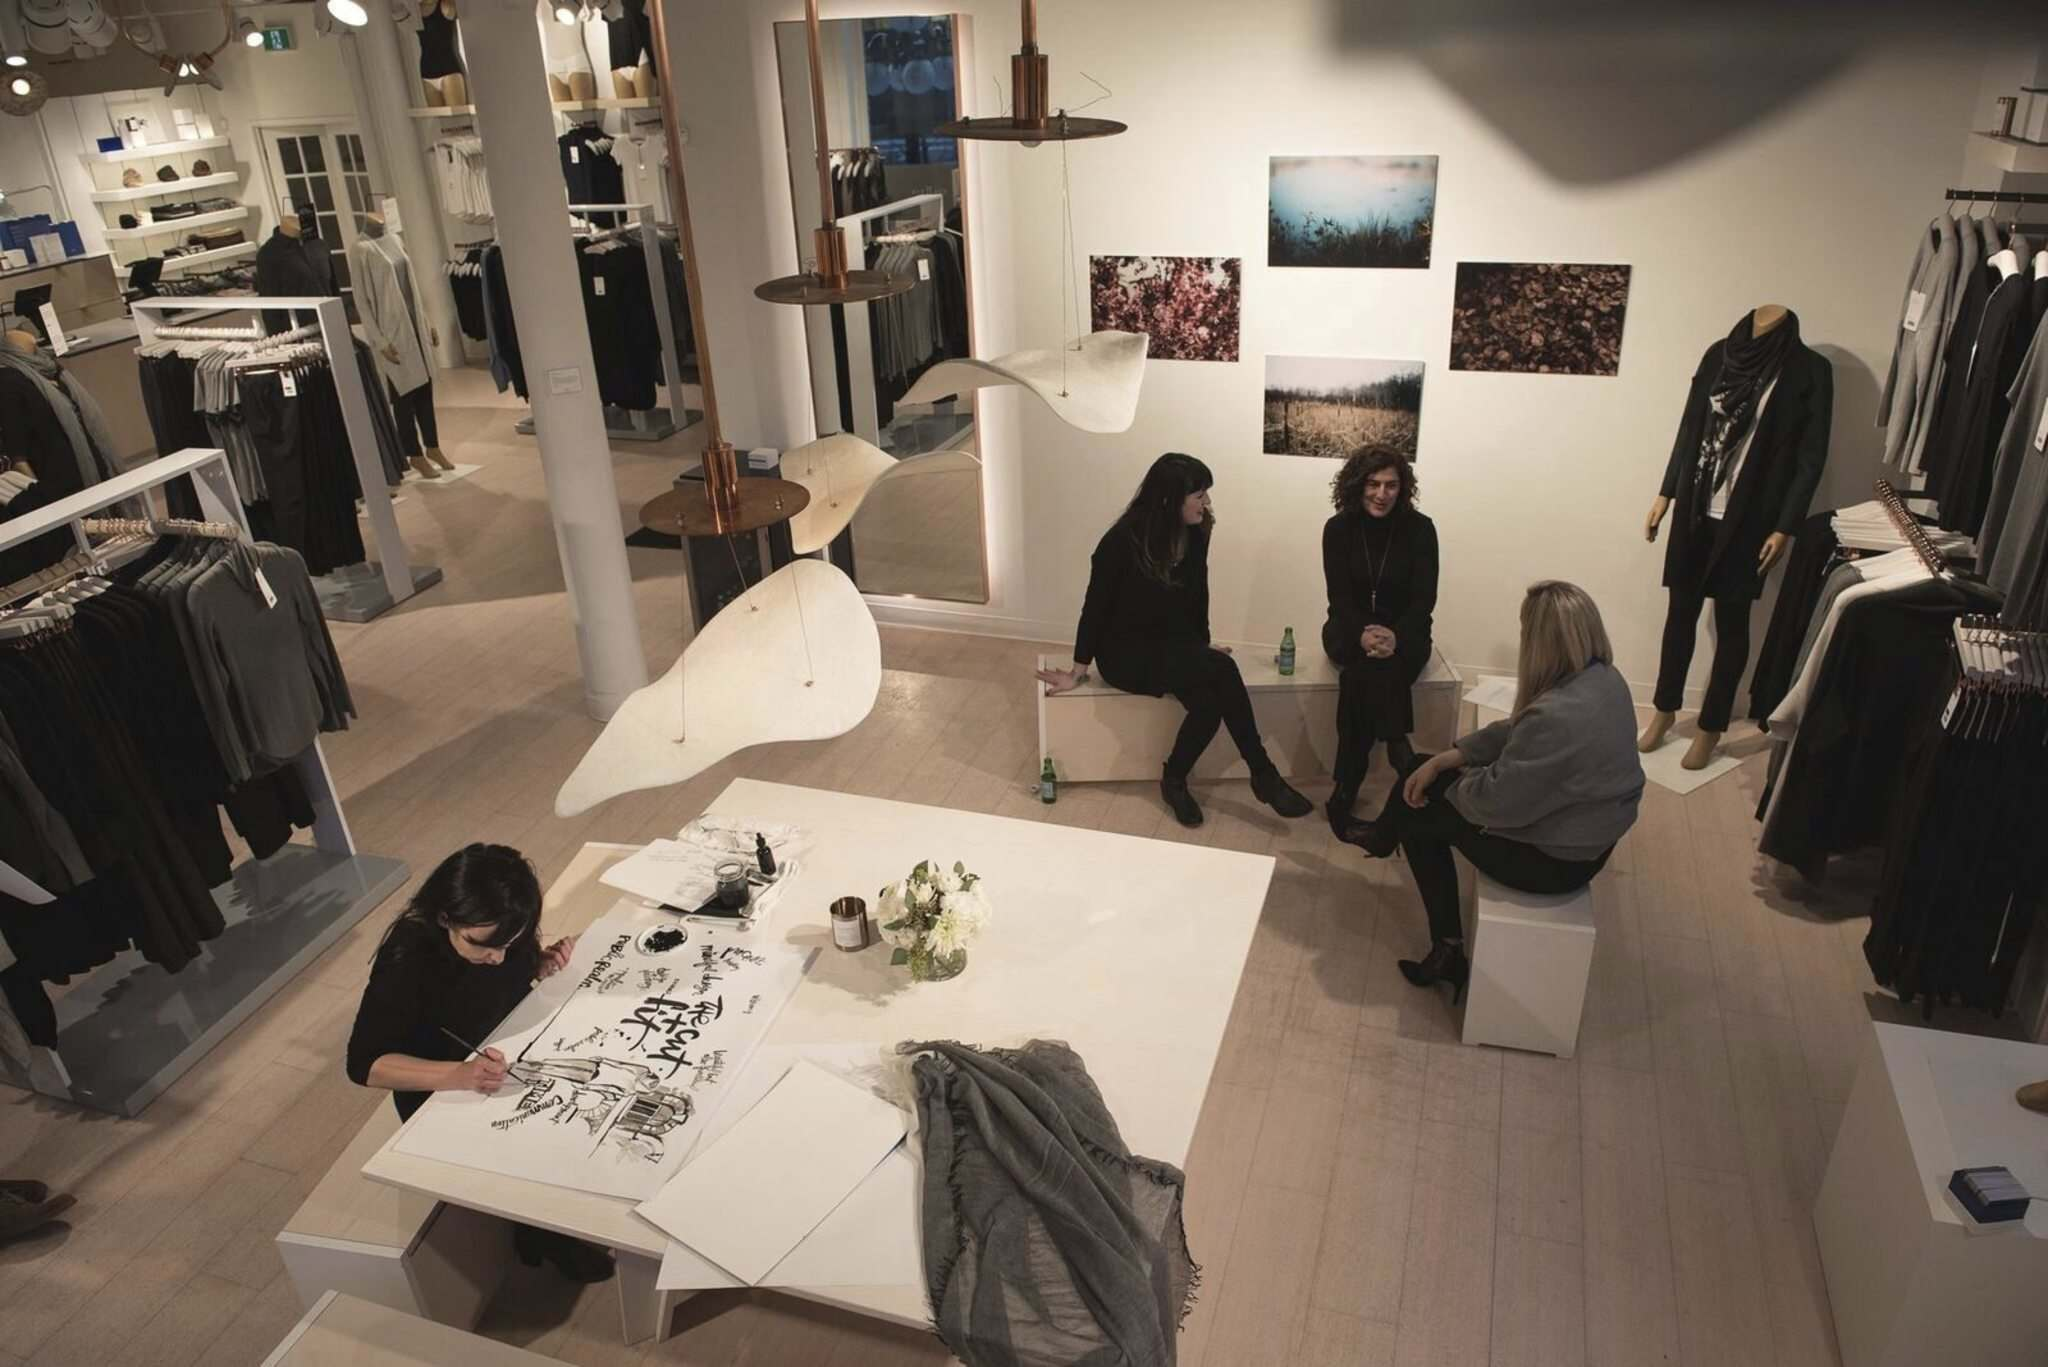 David Moder Photography</p><p>Landscape architects Kaili Brown, left, and Constantine Douvris discuss design ideas with Kit and Ace manager Jane Puchniak while artist Kal Barteski takes notes.</p></p>